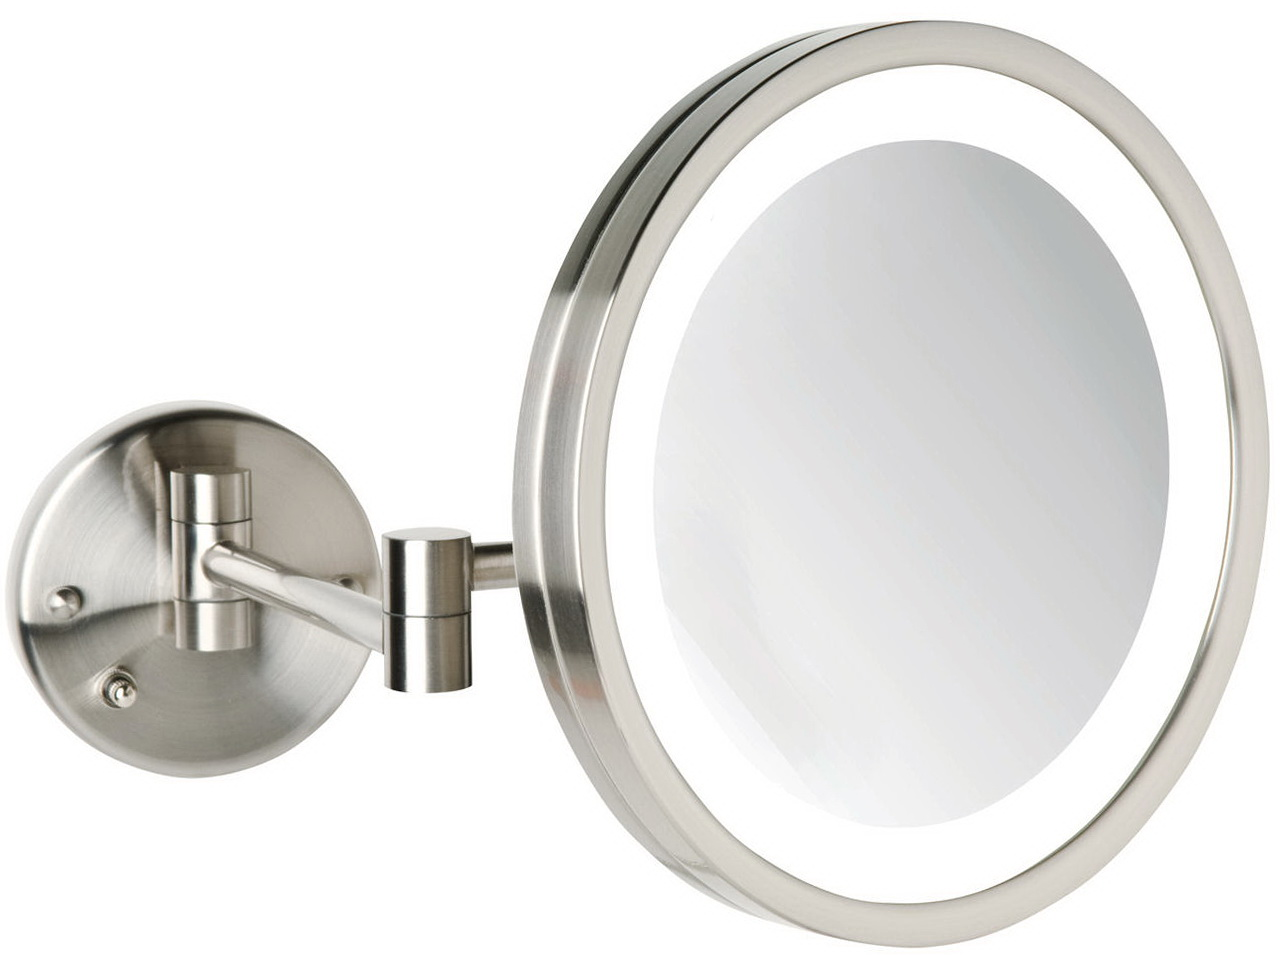 Conair Makeup Mirror Replacement Bulb Home Design Ideas